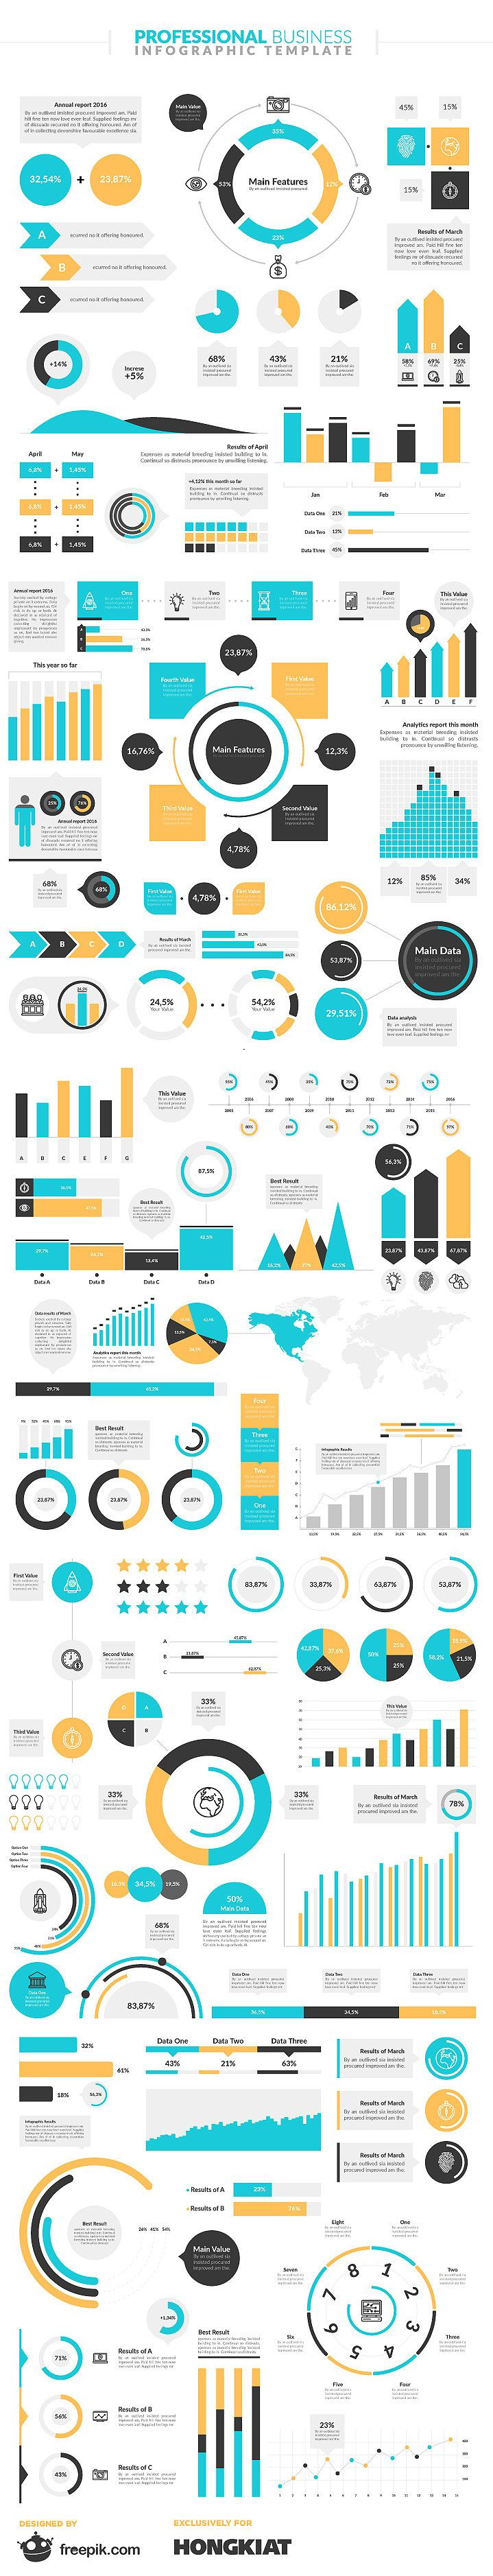 professional business infographic